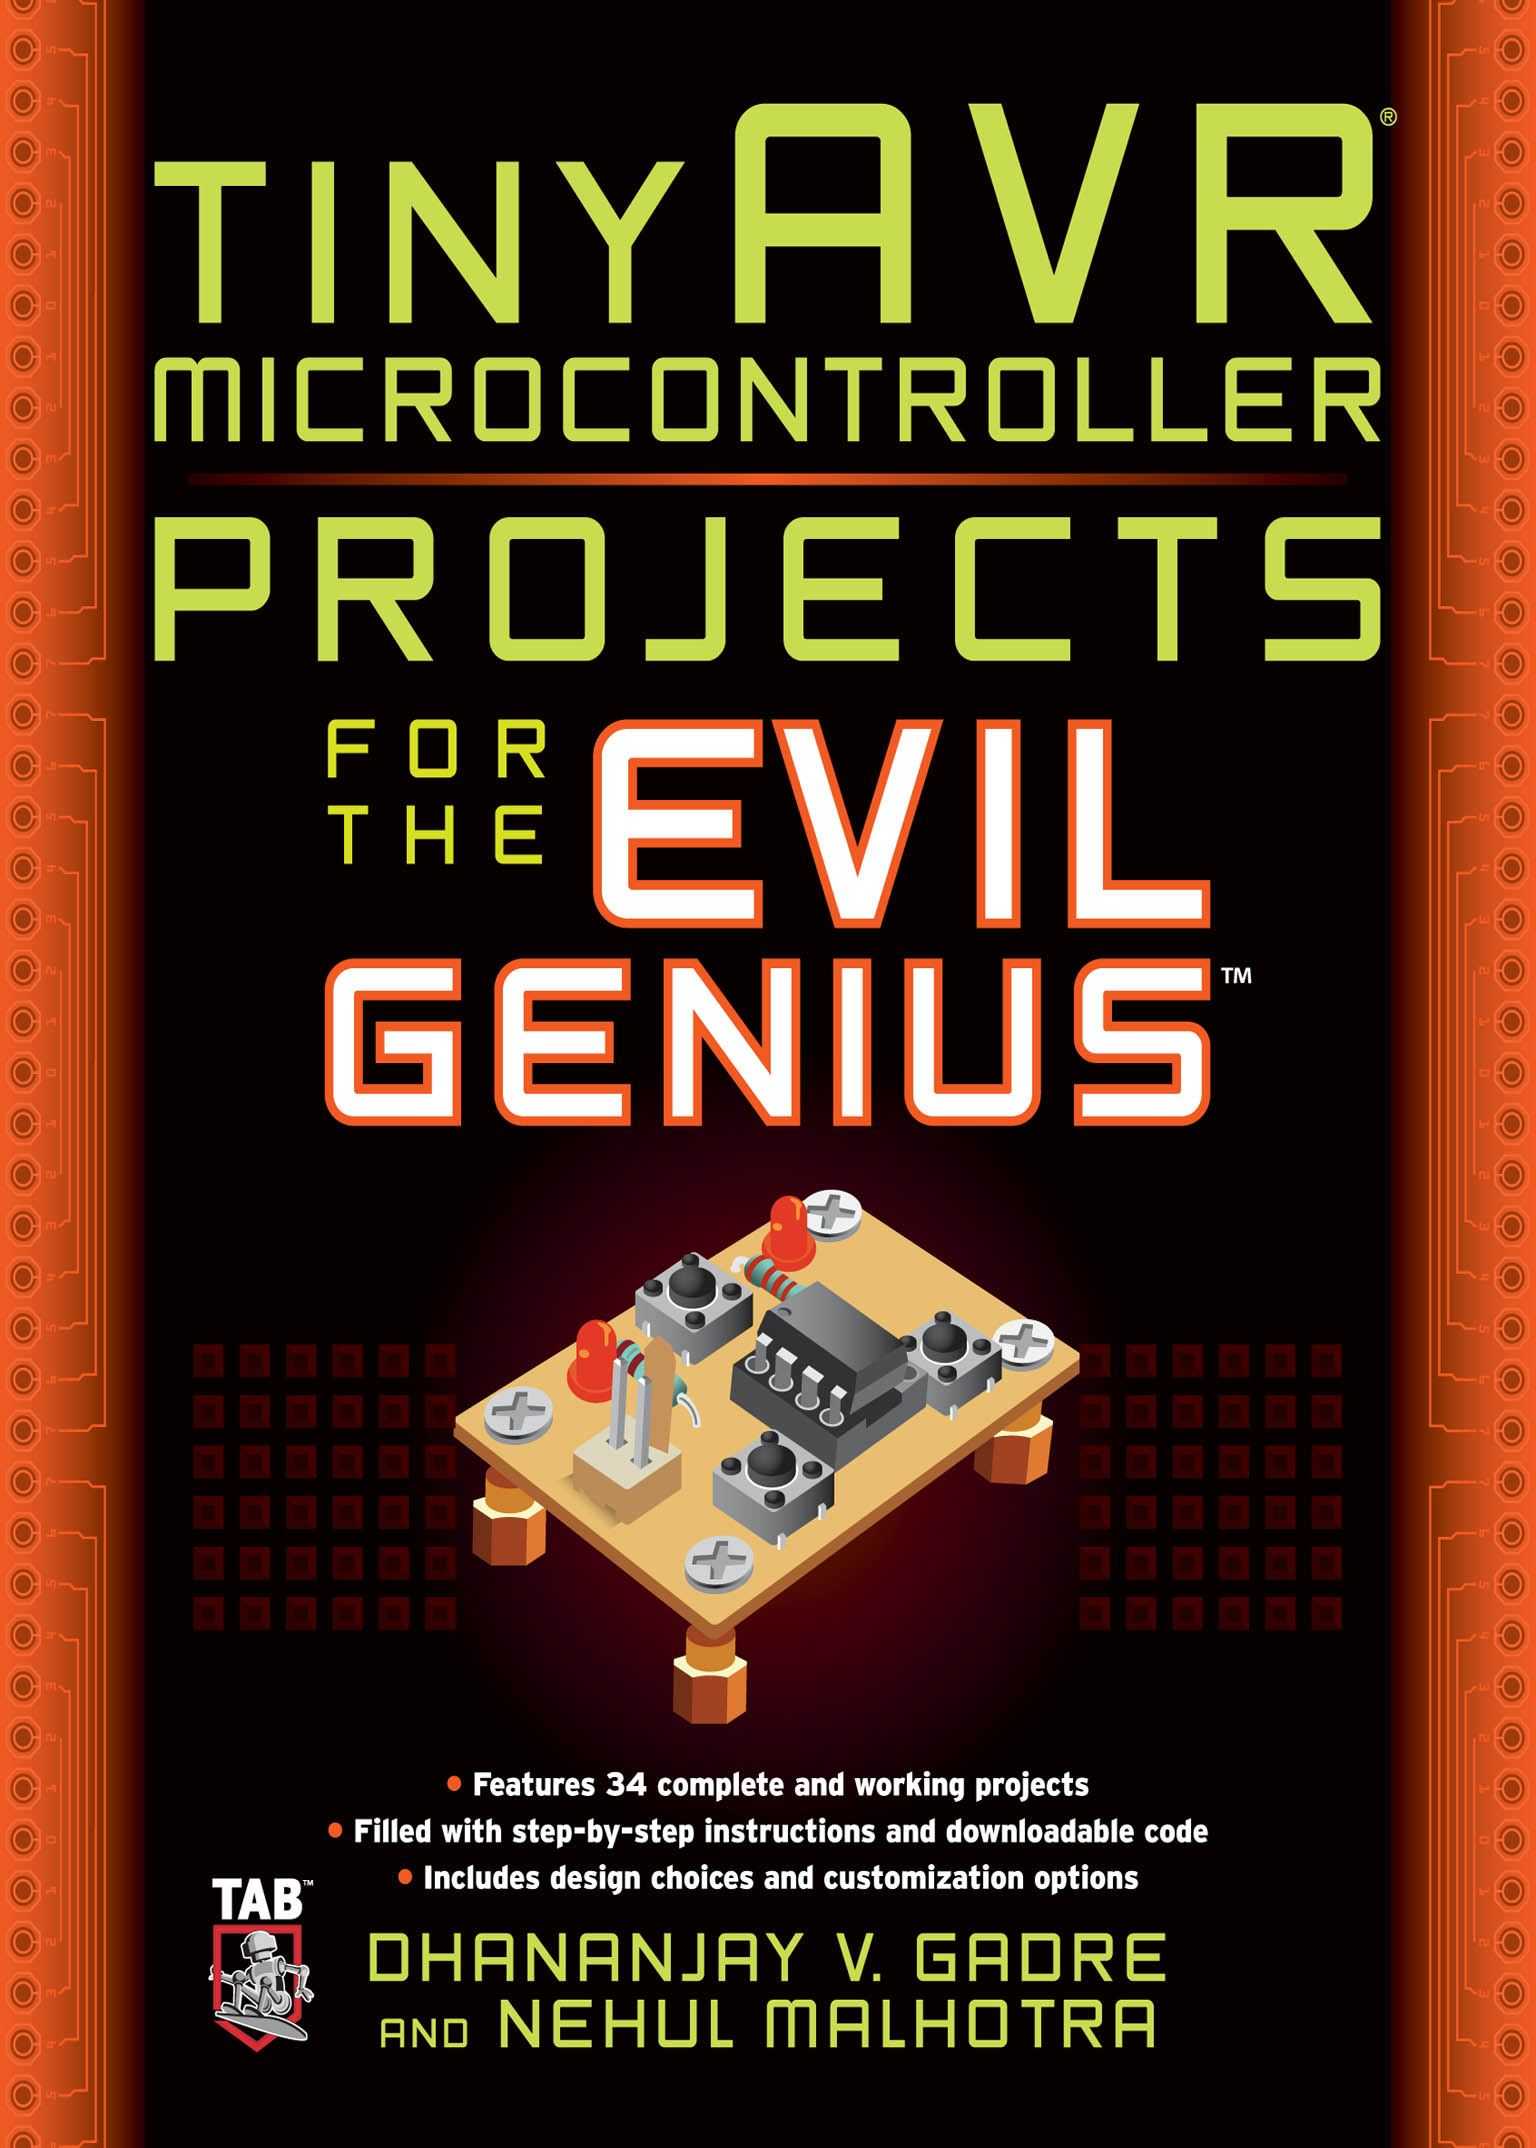 tinyAVR Microcontroller Projects for the Evil Genius By:  Nehul Malhotra,Dhananjay Gadre